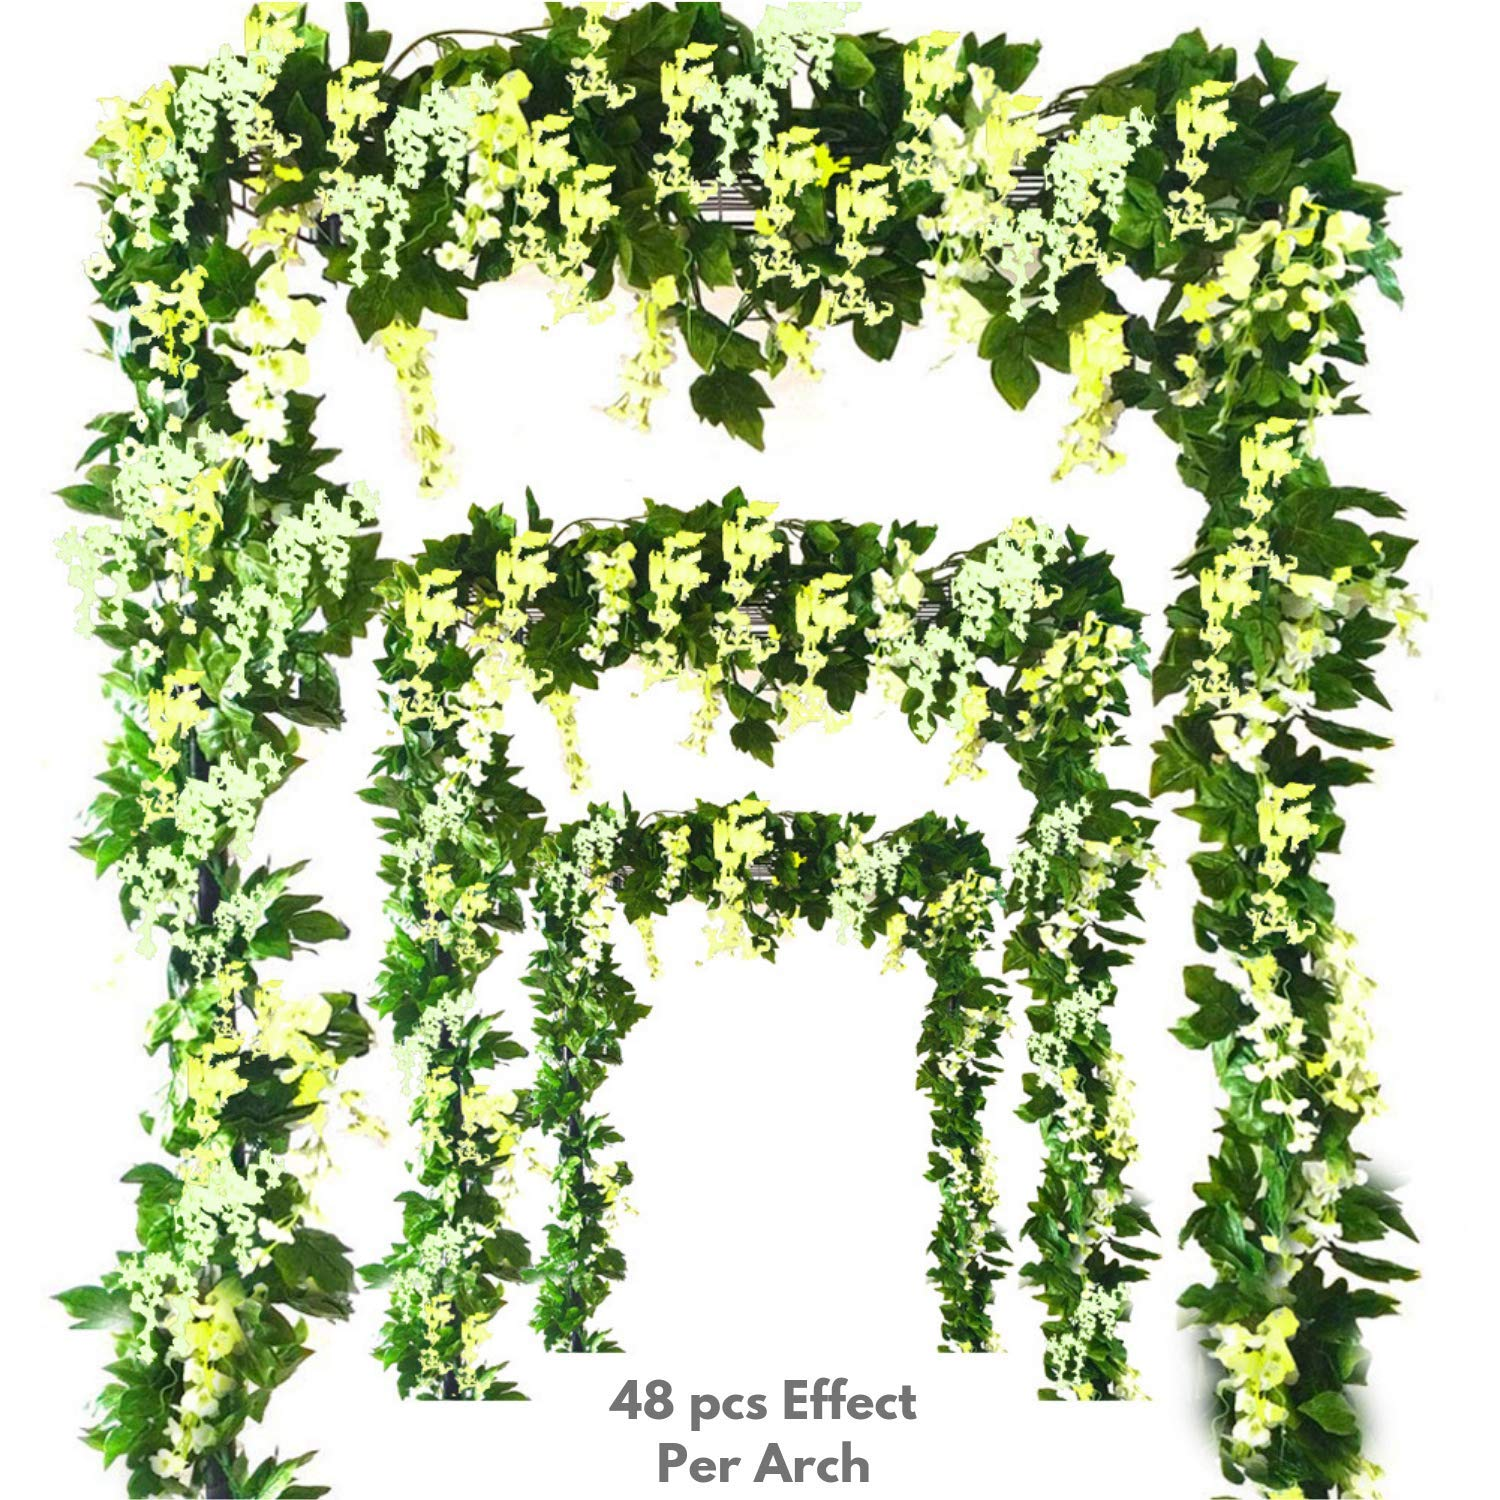 Miss-Bloom-Artificial-Wisteria-Vine-12-Pack-36-Ft-Spring-Hanging-Flowers-Dcor-Silk-Plants-Garlands-for-Sweet-Home-Kitchen-Wall-Fake-Plant-Rattan-for-Outdoor-Wedding-Party-Decorations-Green